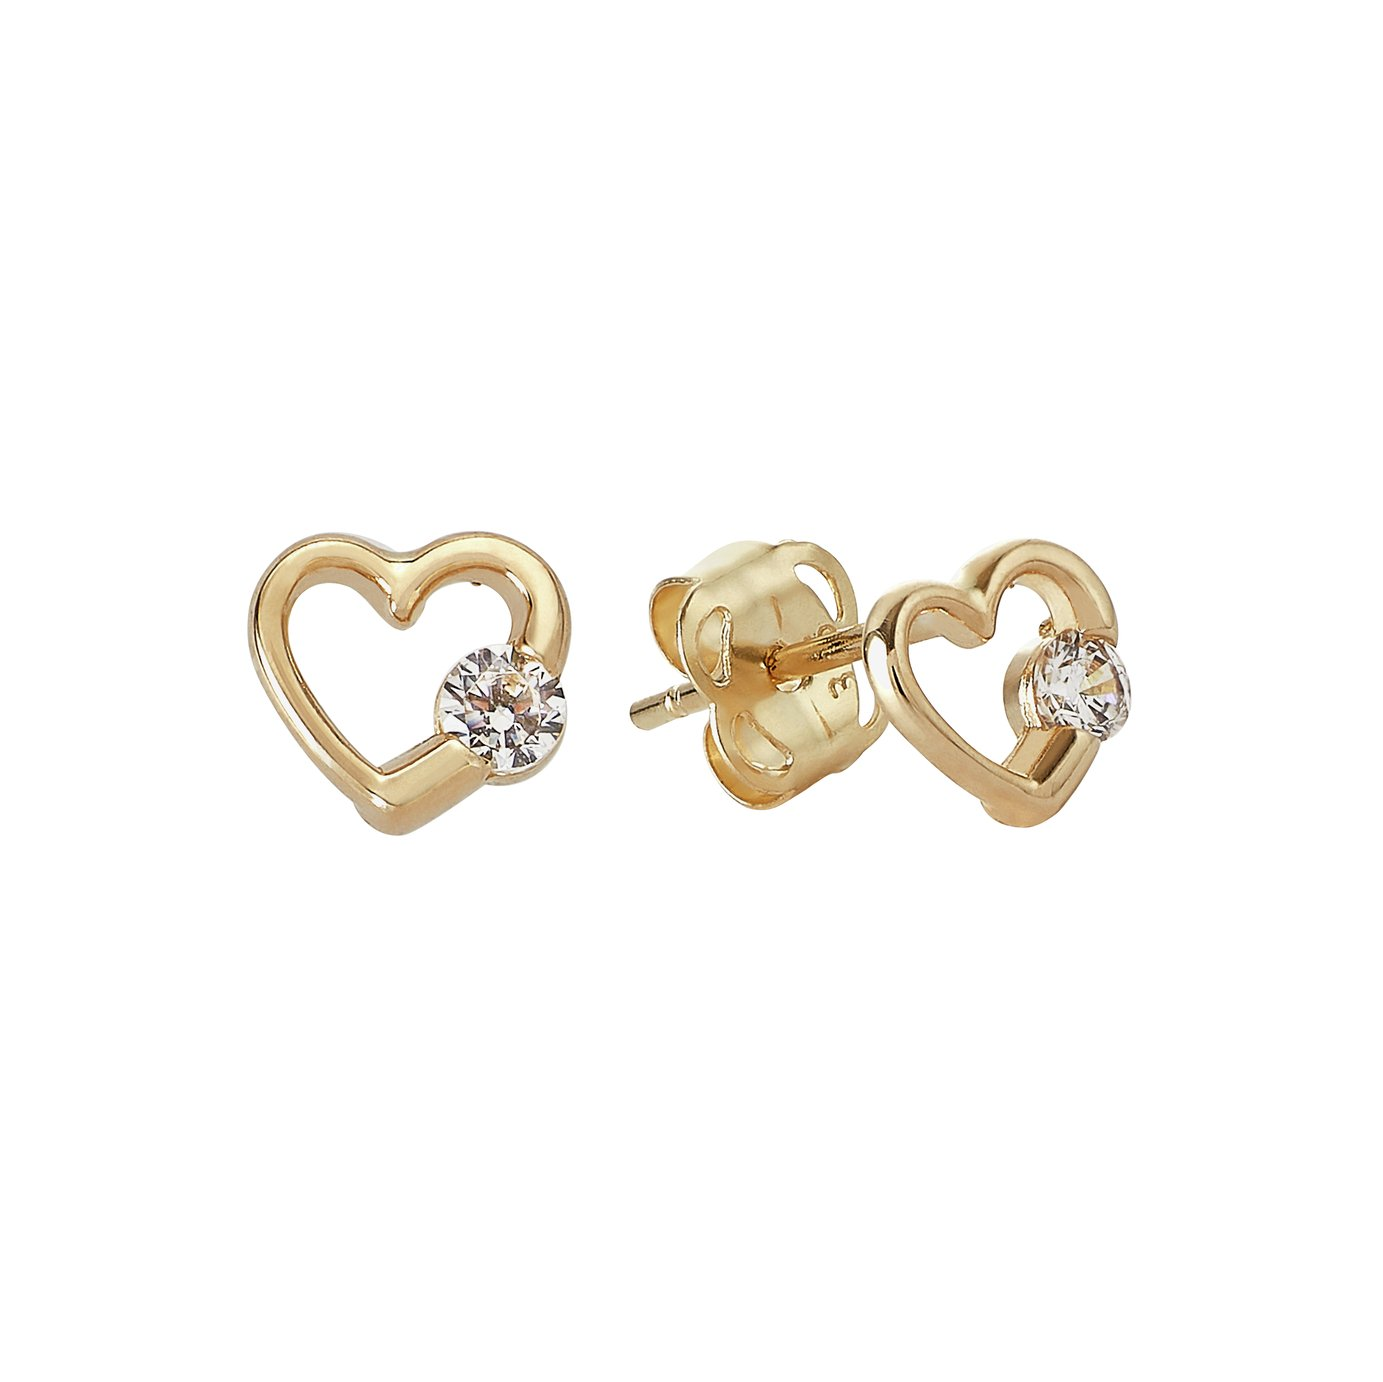 Revere Kid's 9ct Gold Cubic Zirconia Heart Stud Earrings